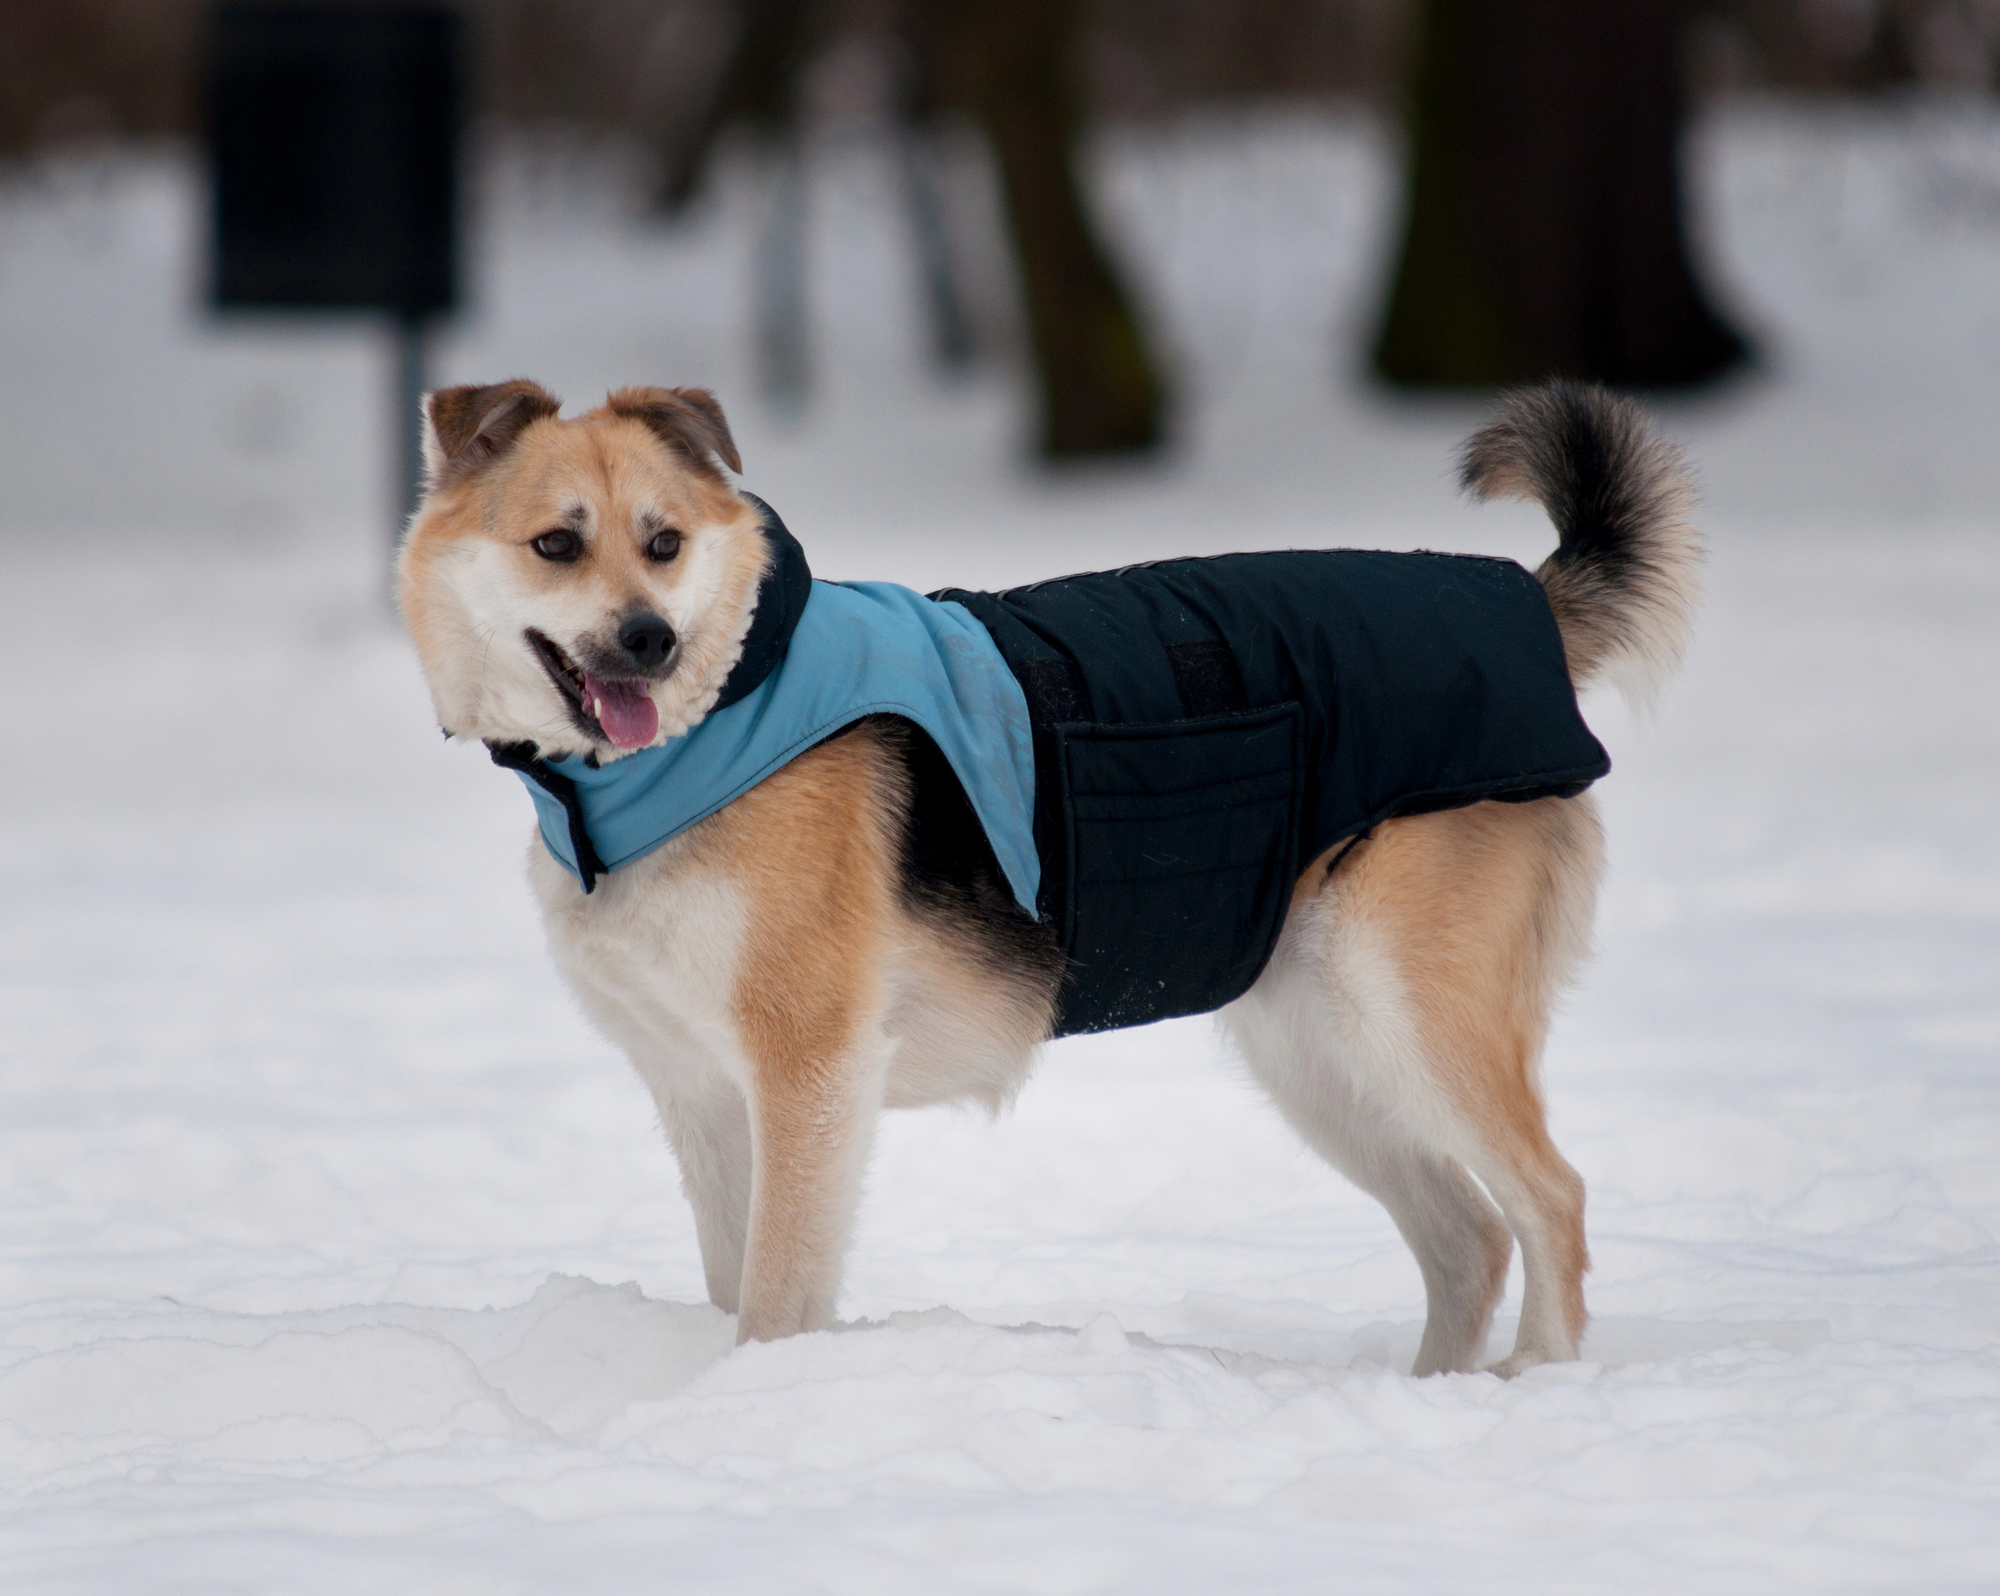 Can Dogs Get Frostbite On Their Feet